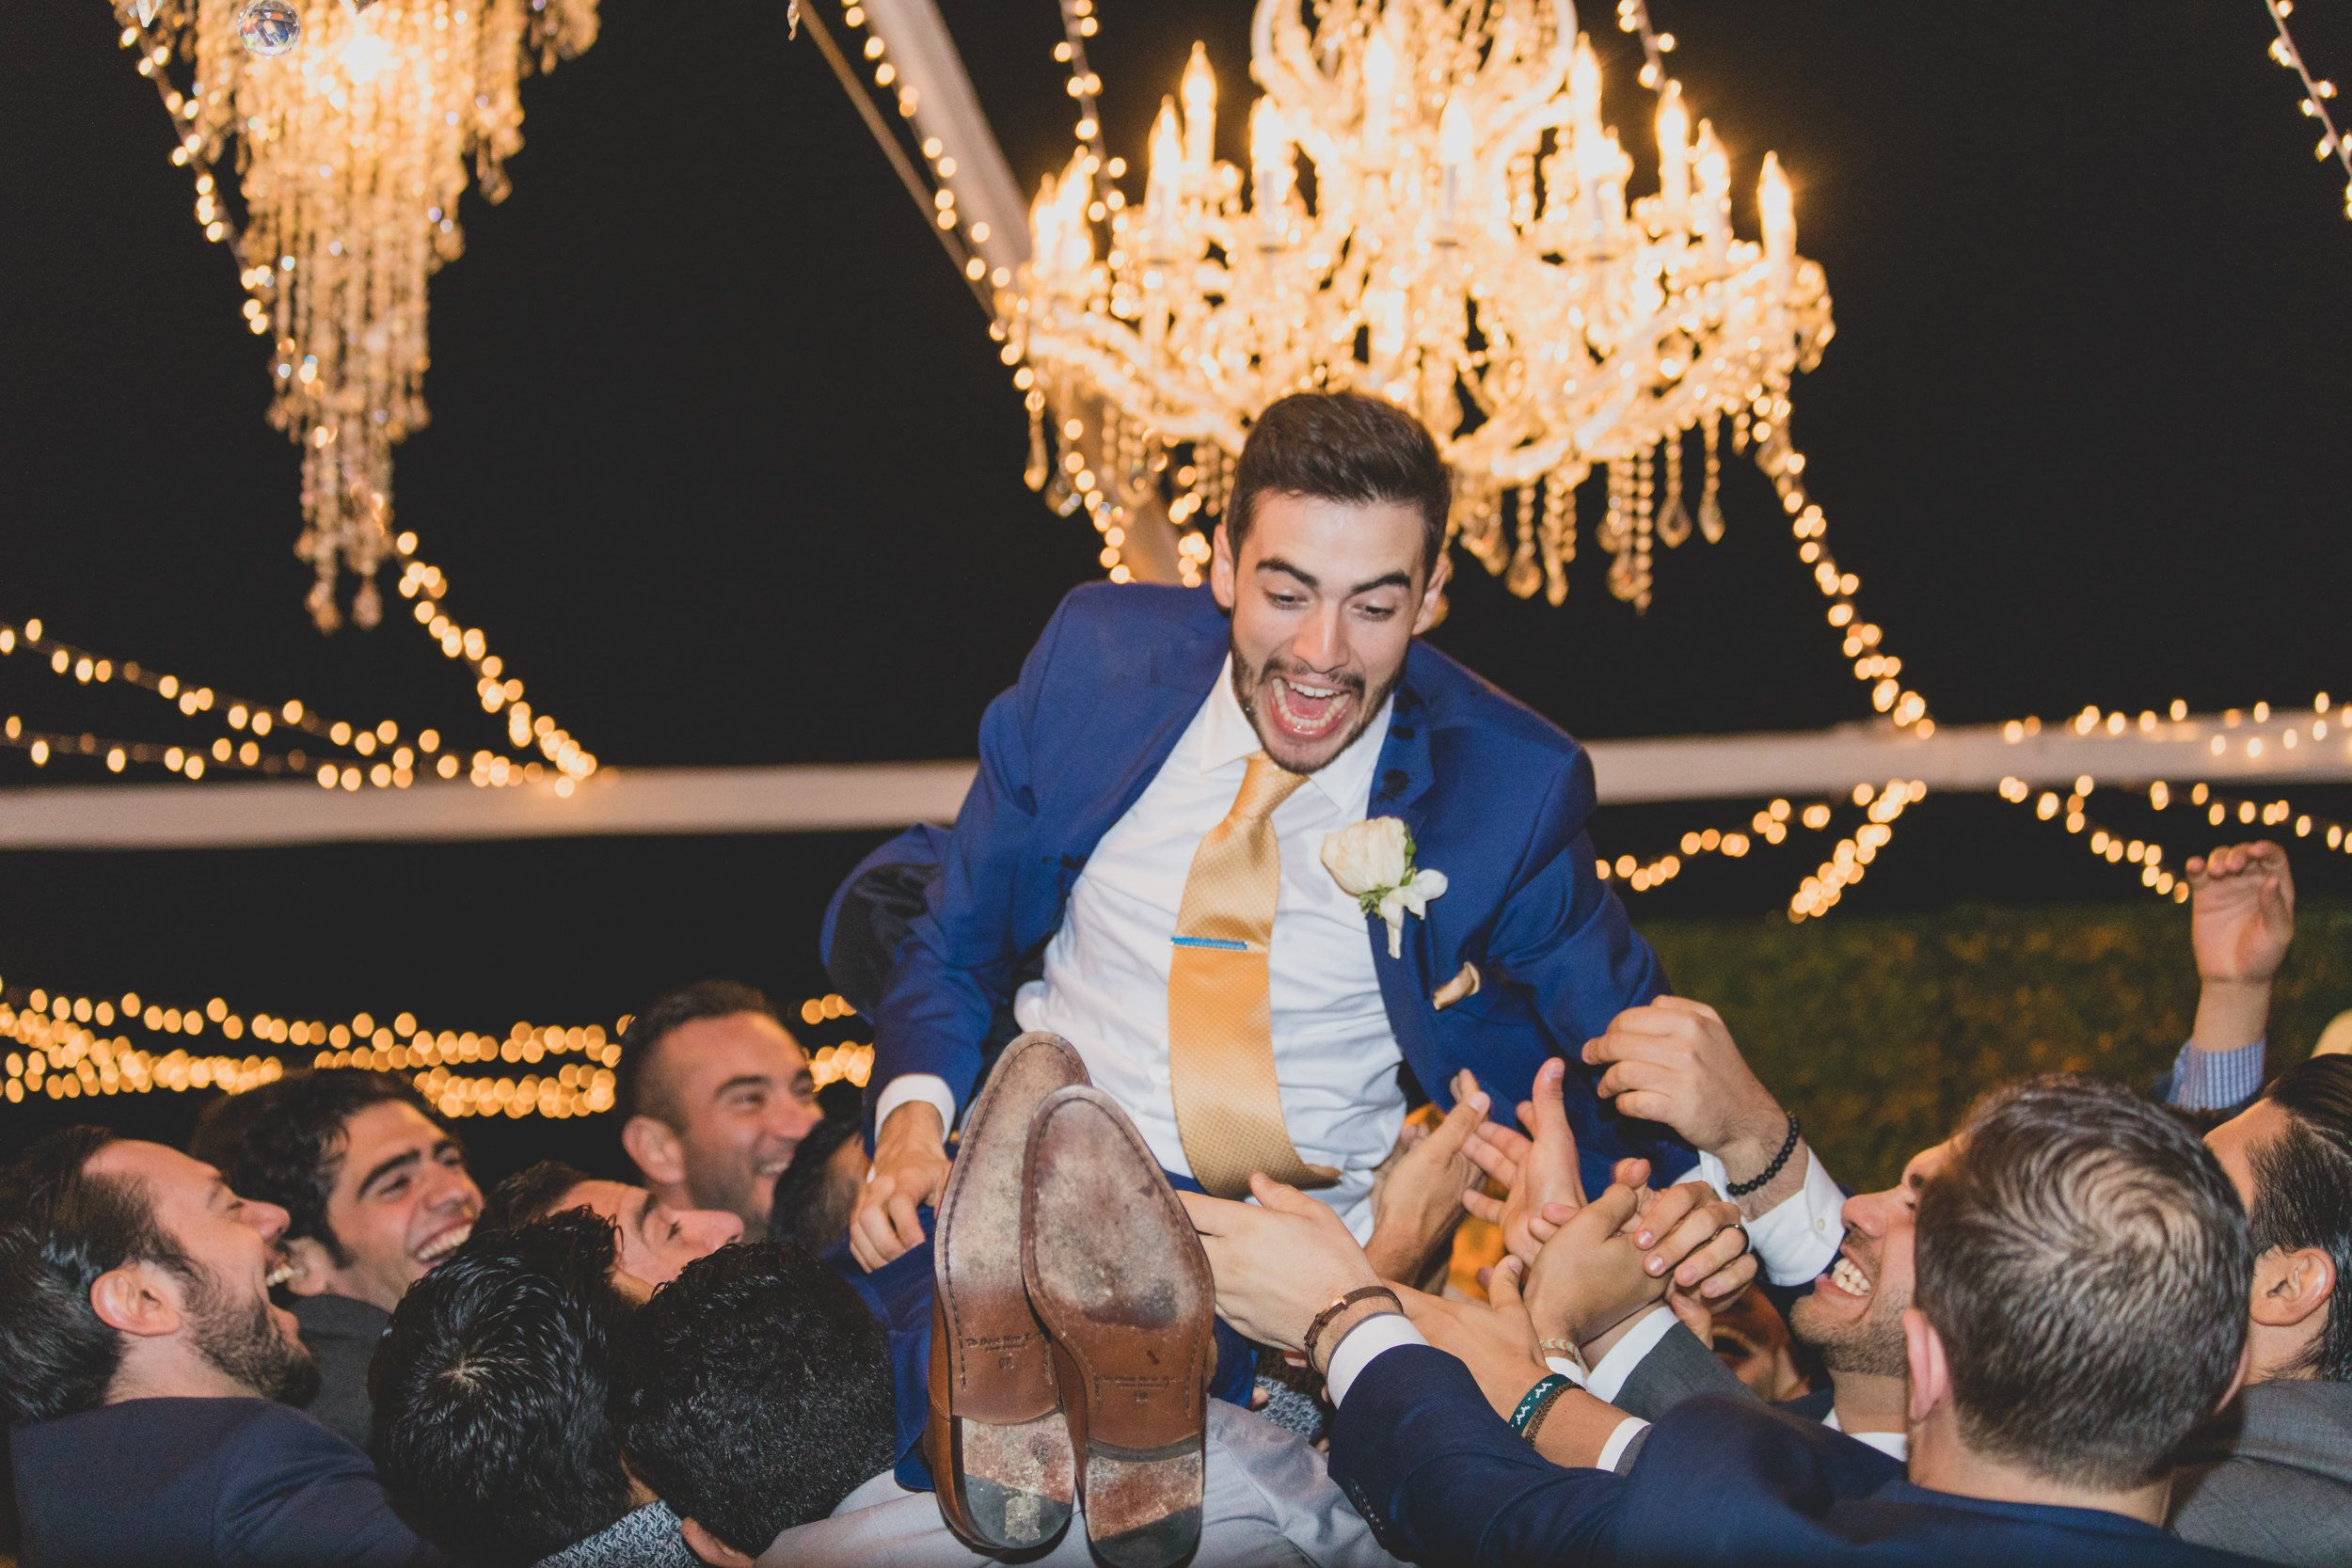 Groom being lifted in the air by his groomsman.